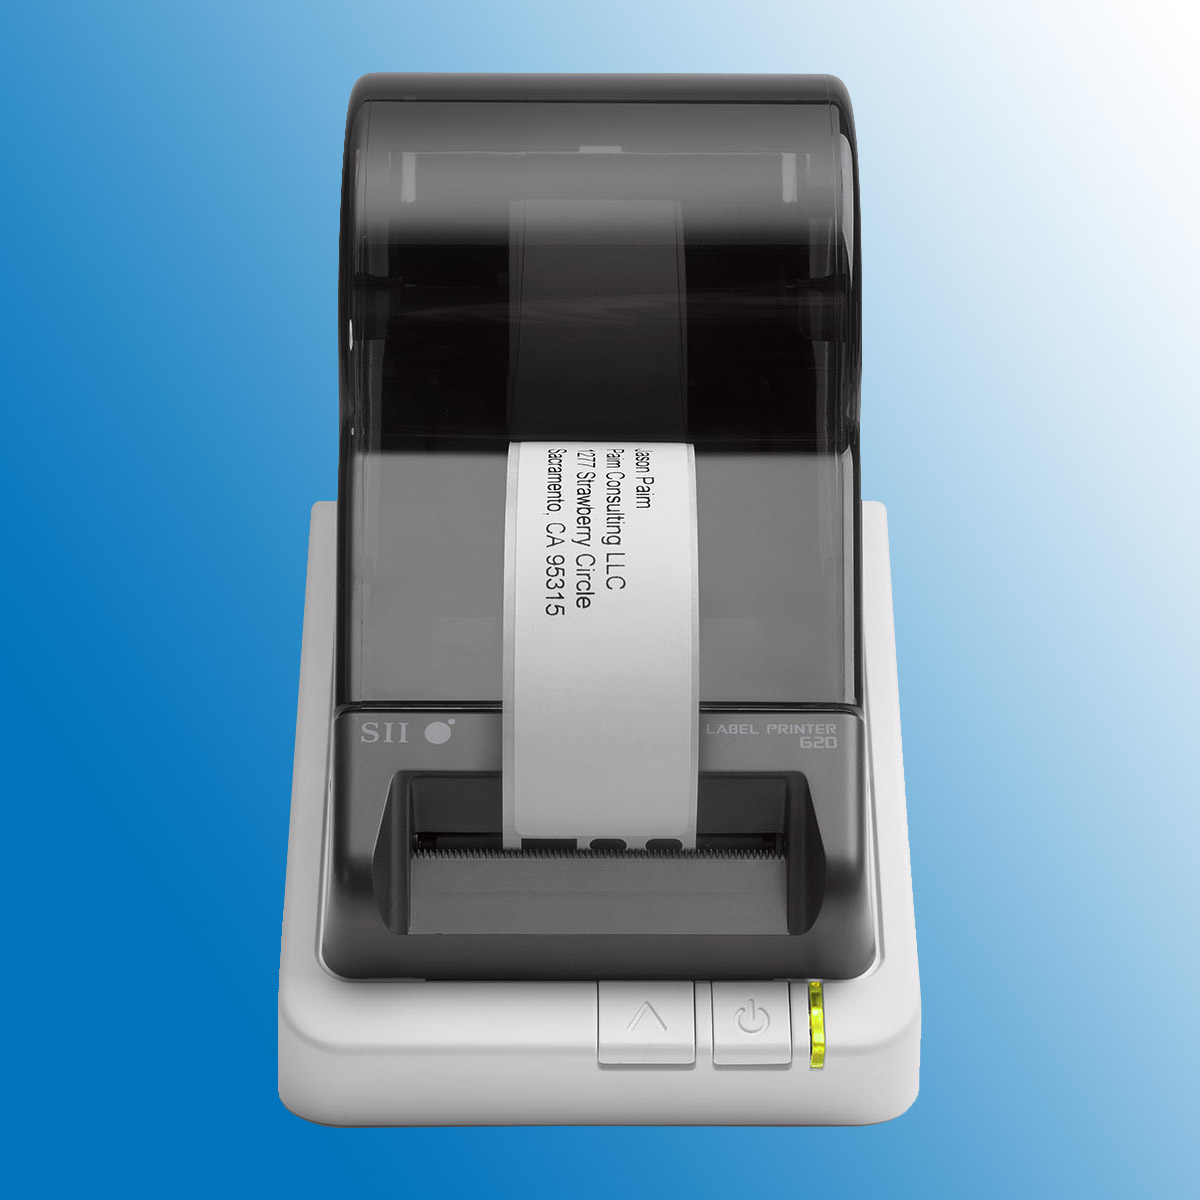 SLP 620 Smart Label Printer